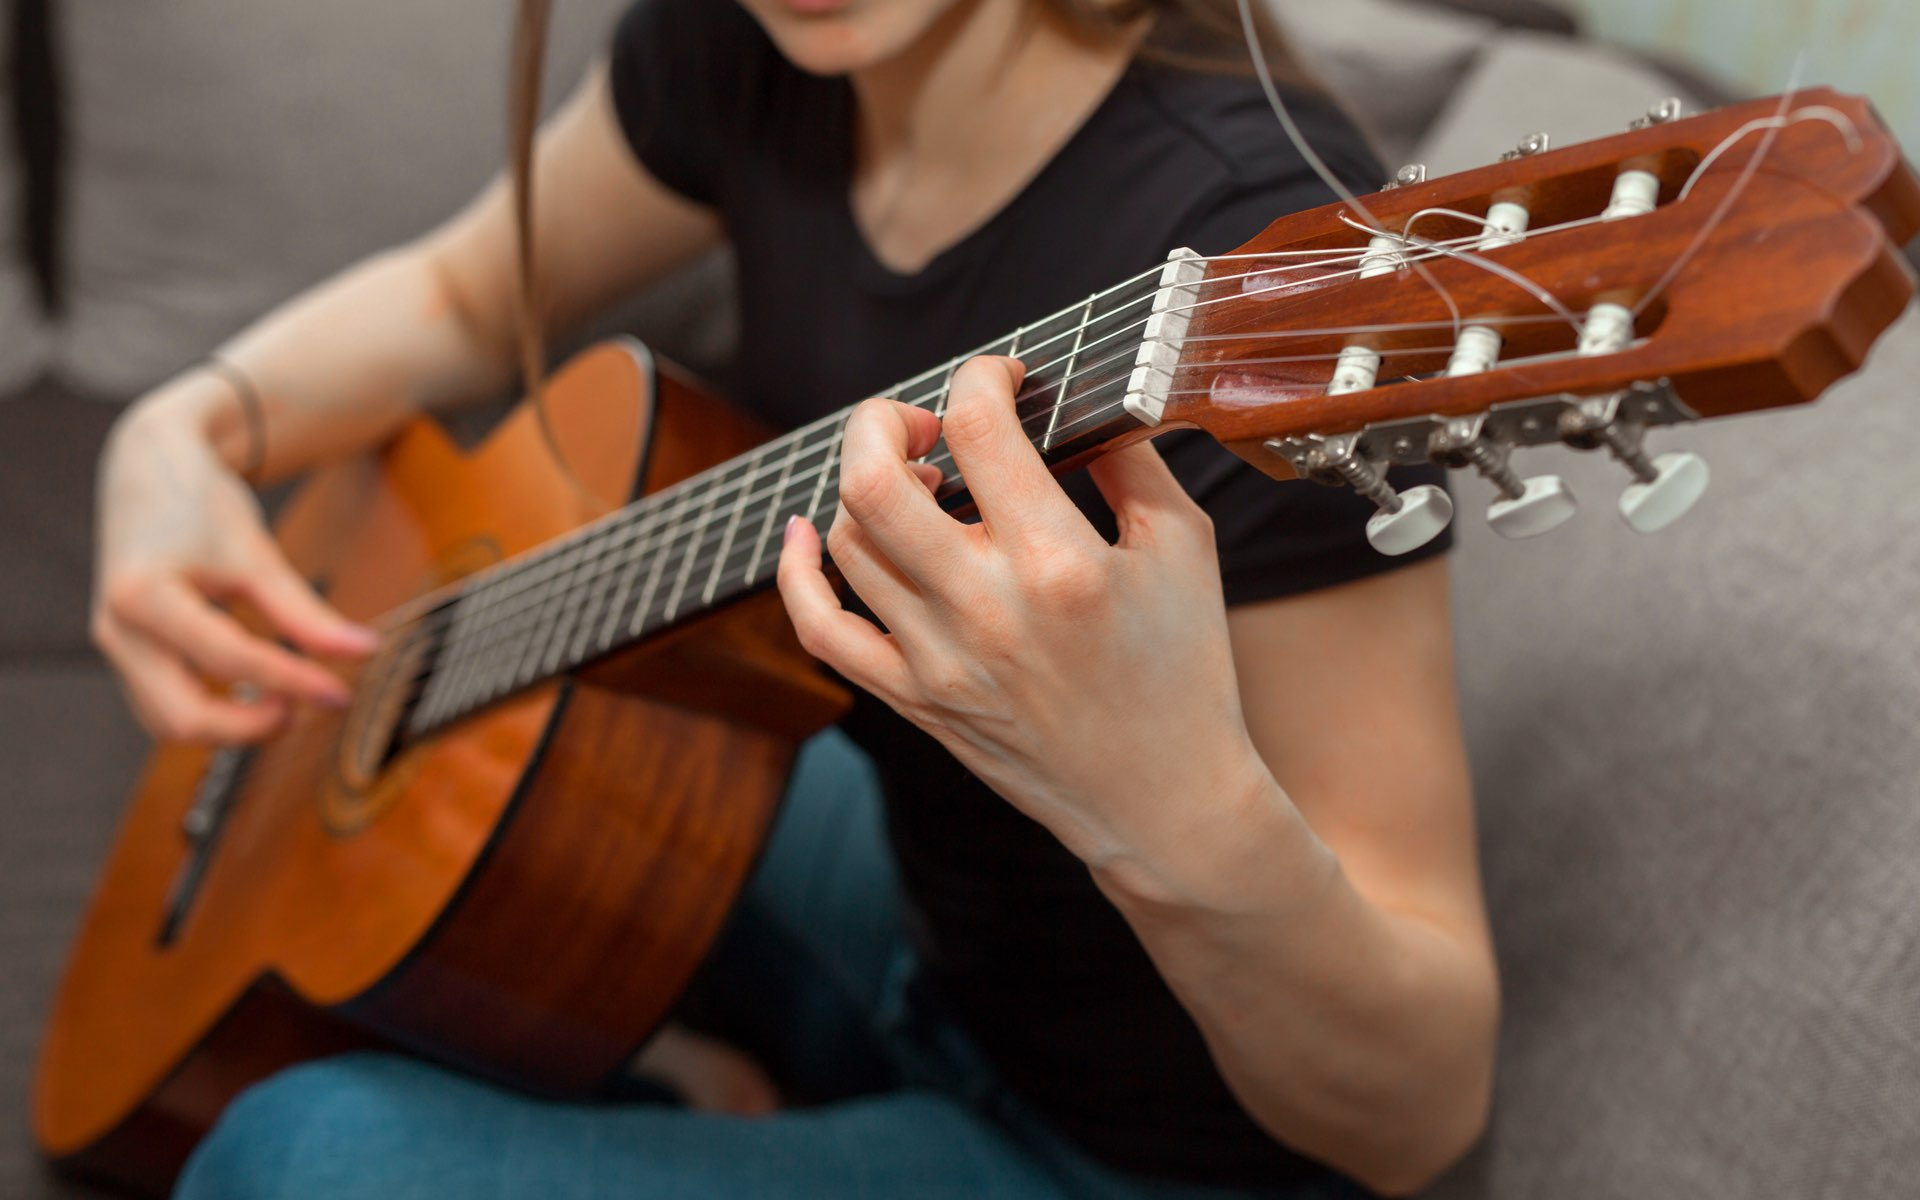 woman playing classical guitar on a couch